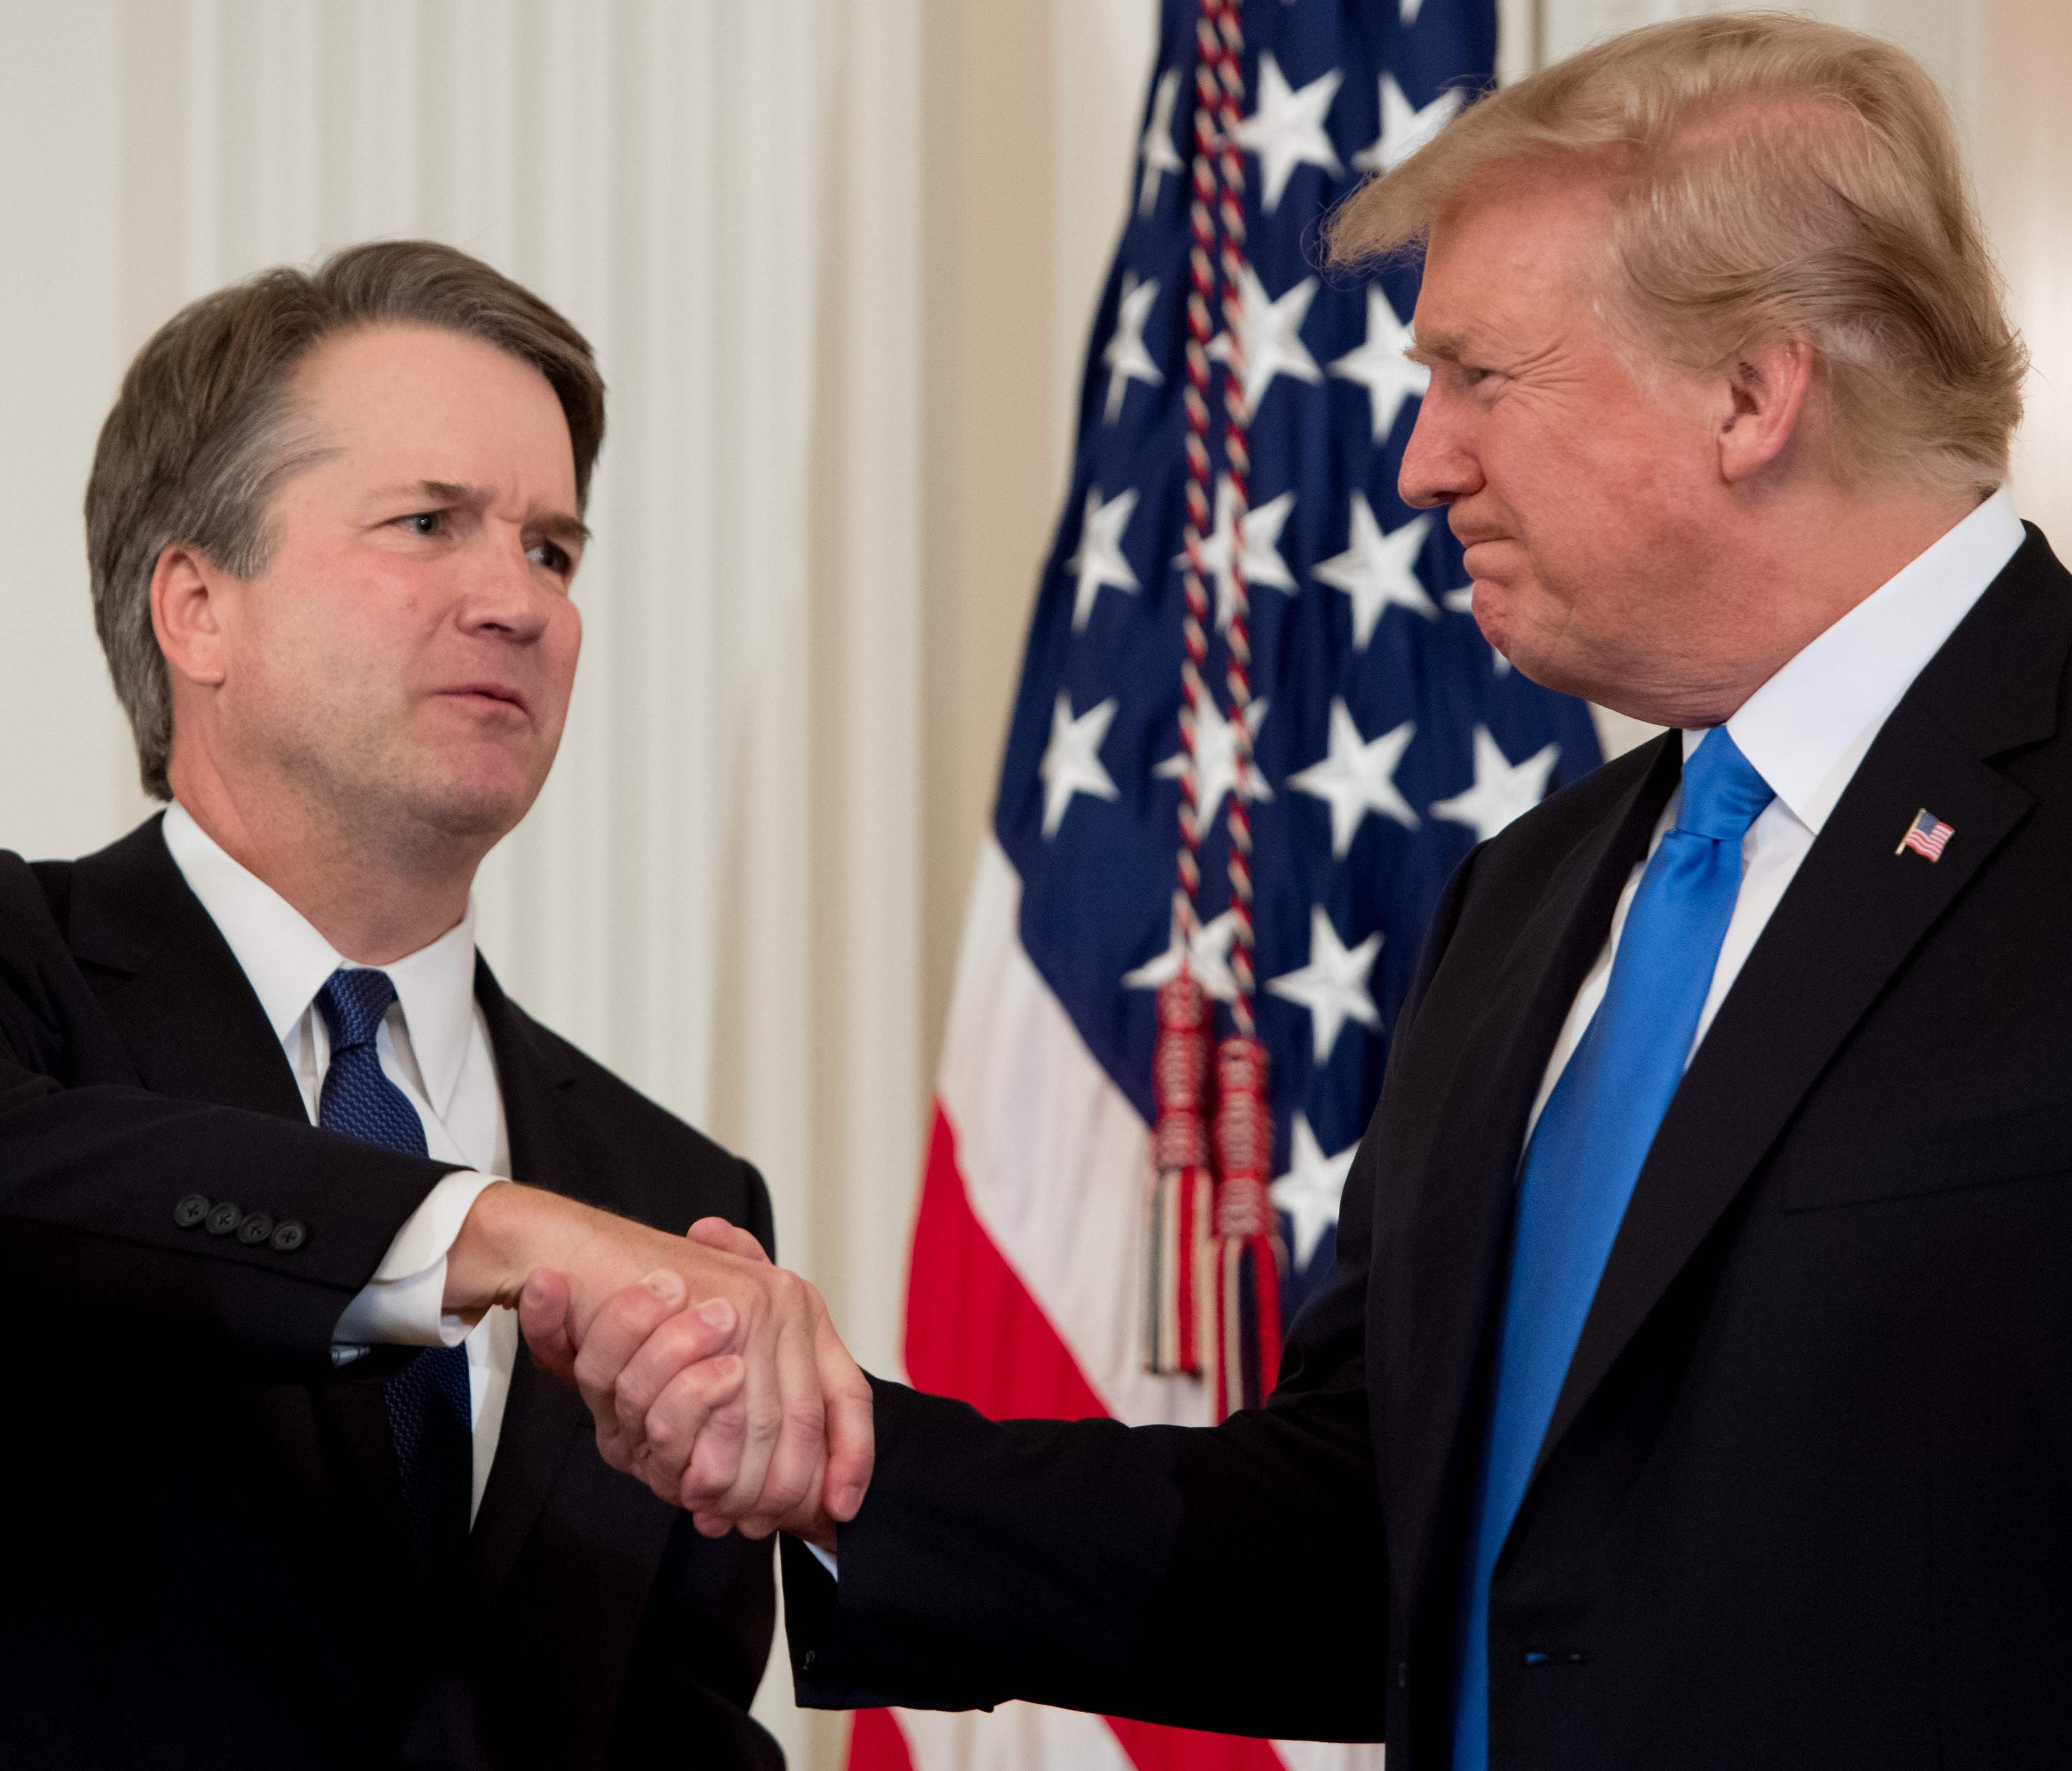 Judge Brett Kavanaugh shakes hands with President Donald Trump after being nominated to the Supreme Court in the East Room of the White House on July 9, 2018 in Washington, D.C.